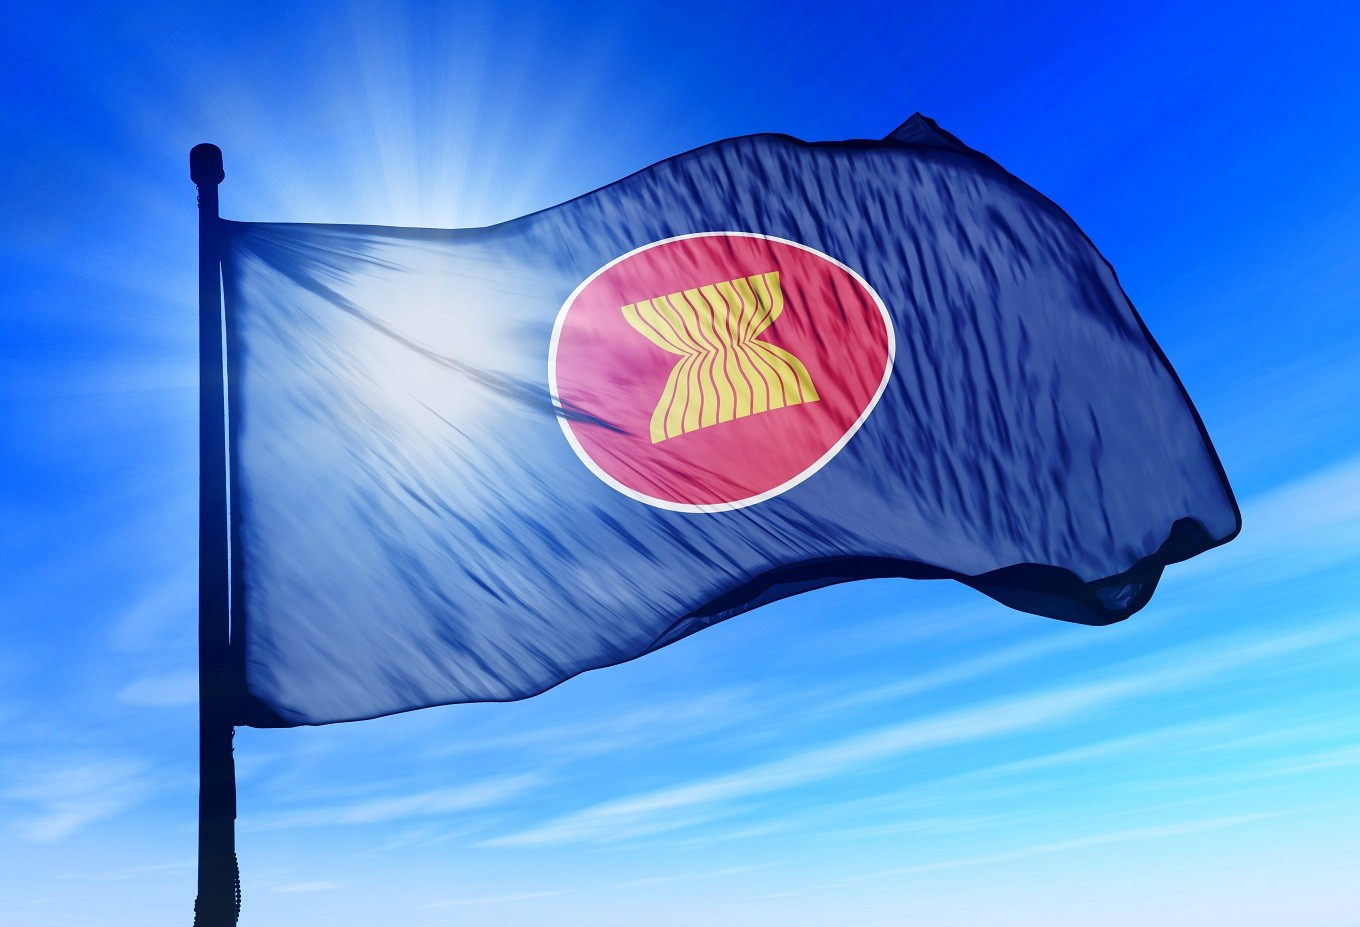 Supporting ASEAN's 2025 vision